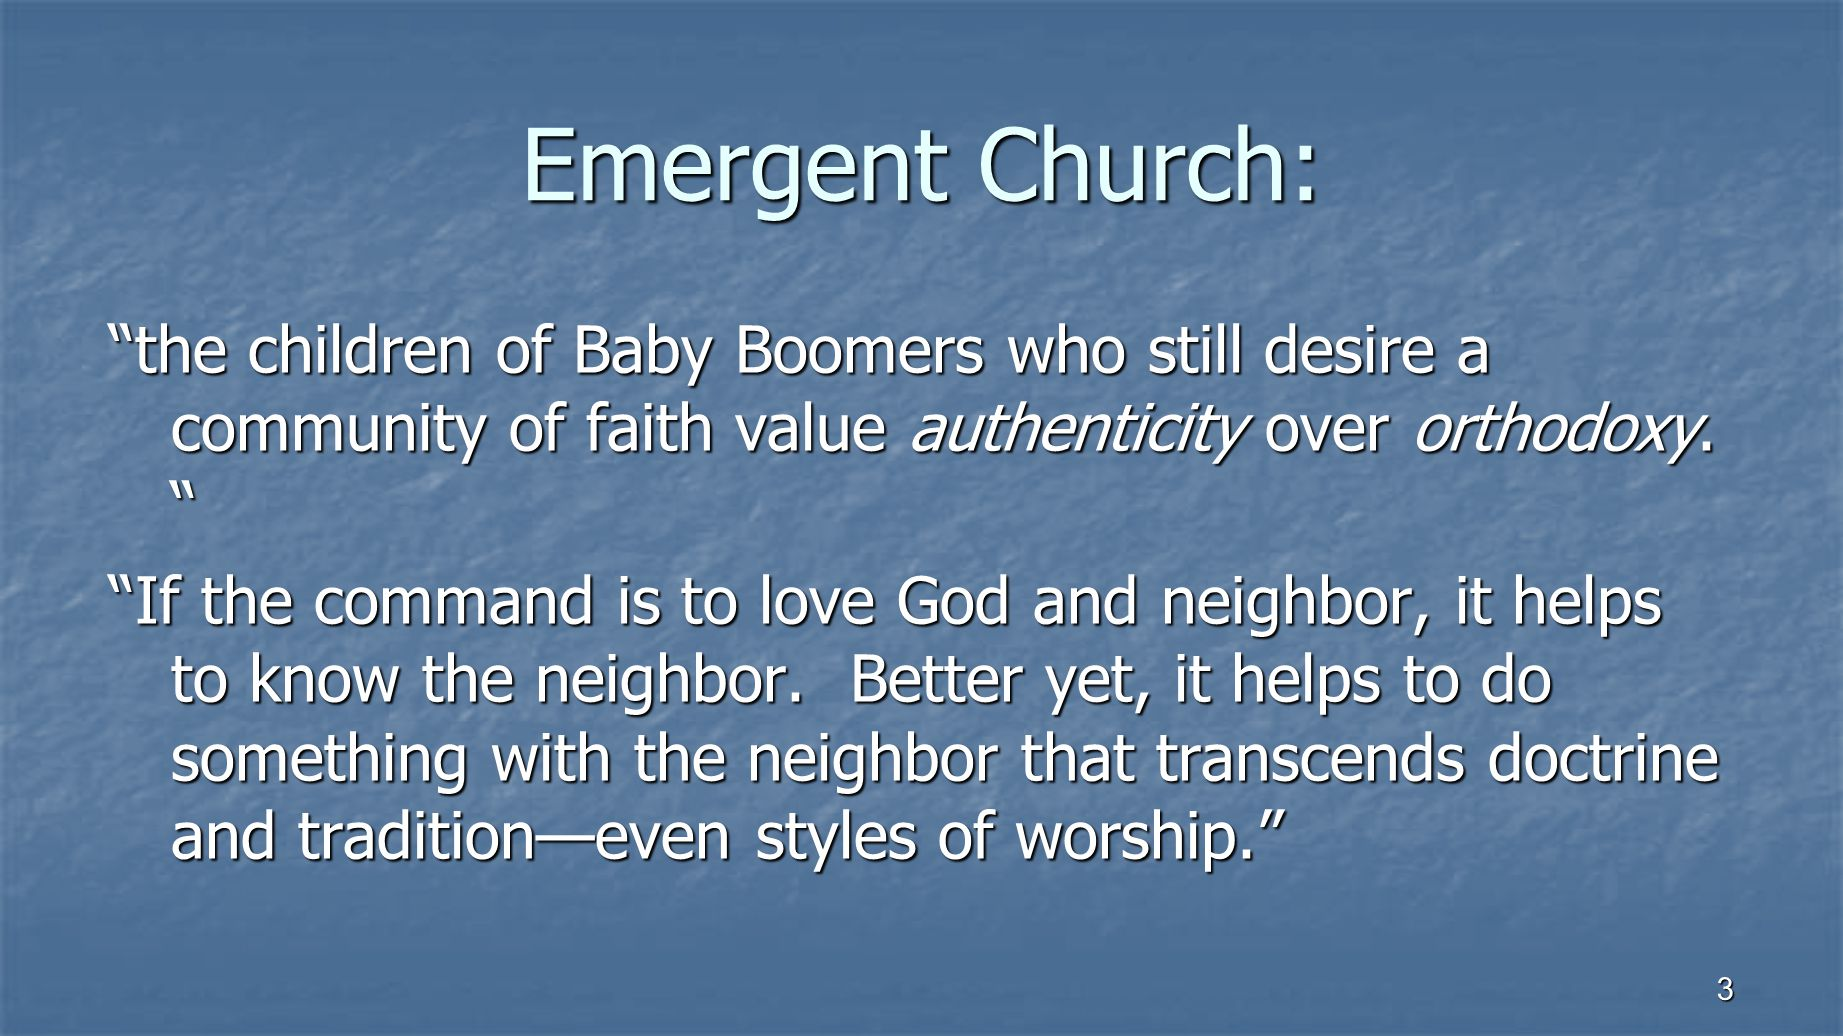 3 Emergent Church: the children of Baby Boomers who still desire a community of faith value authenticity over orthodoxy.